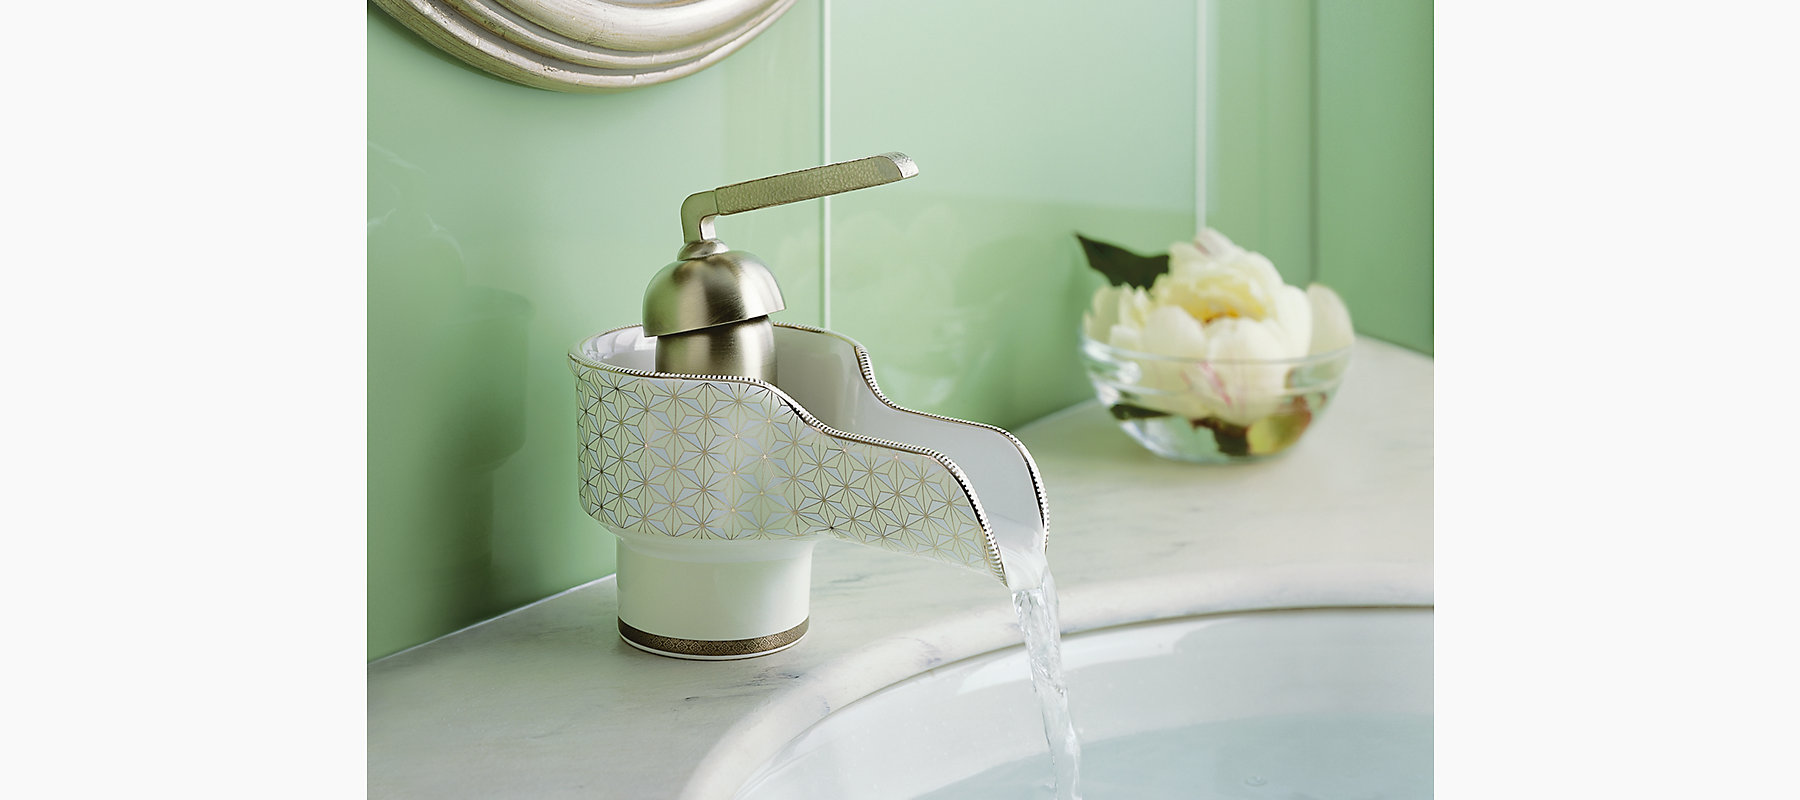 Silkweave design on Bol bathroom sink faucet with lever handle | K ...